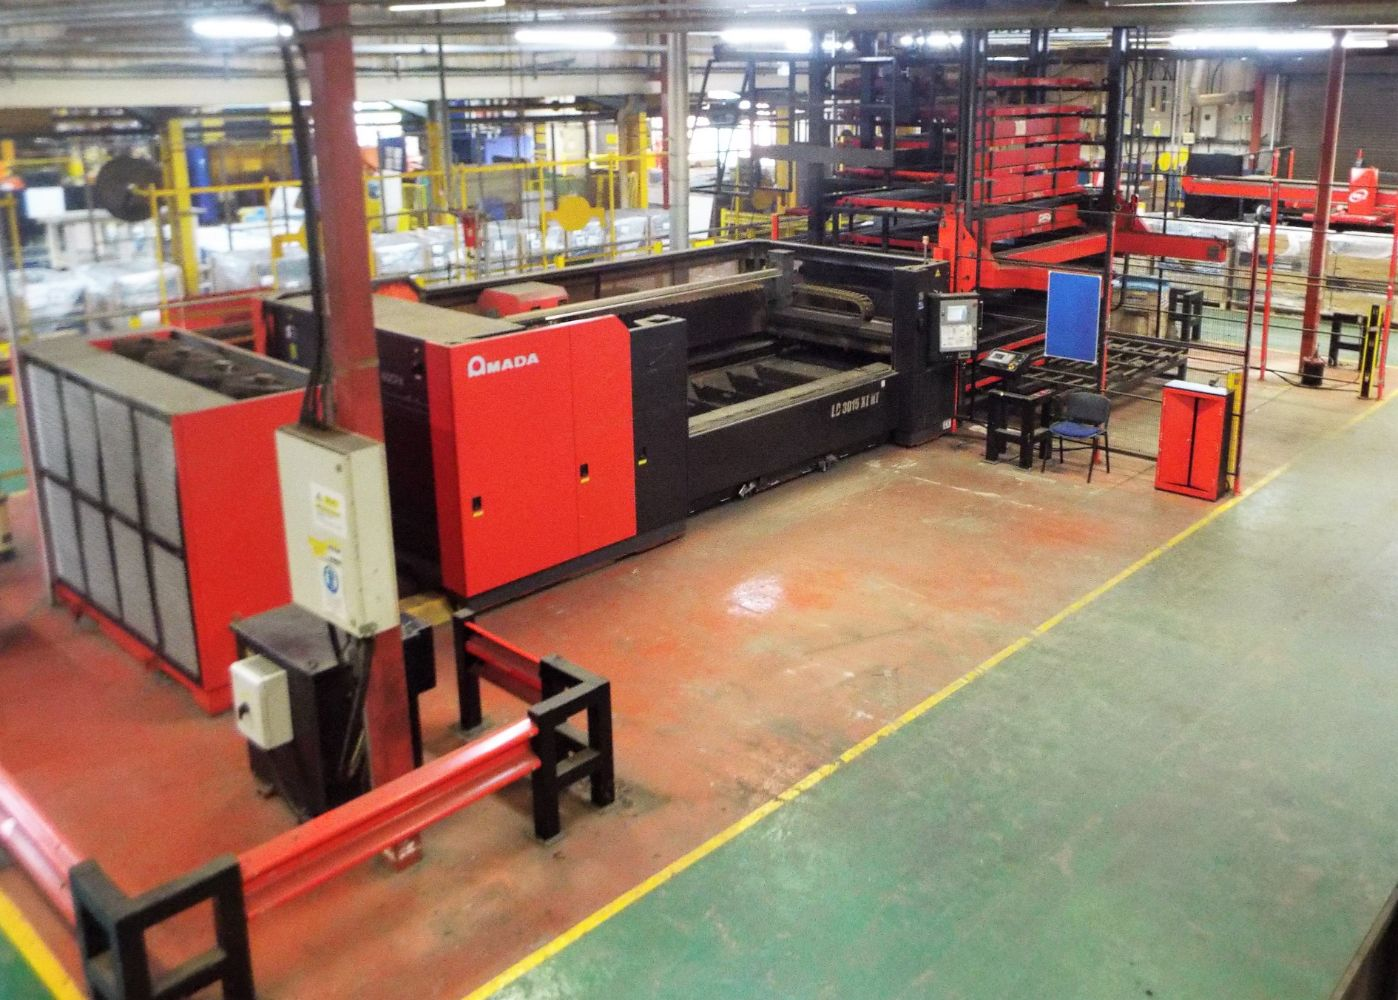 Amada Laser Cutting Centres, ITW Gema Powder Coating Application System, Robotic Mig Welding Cells & Other Metalworking Assets.